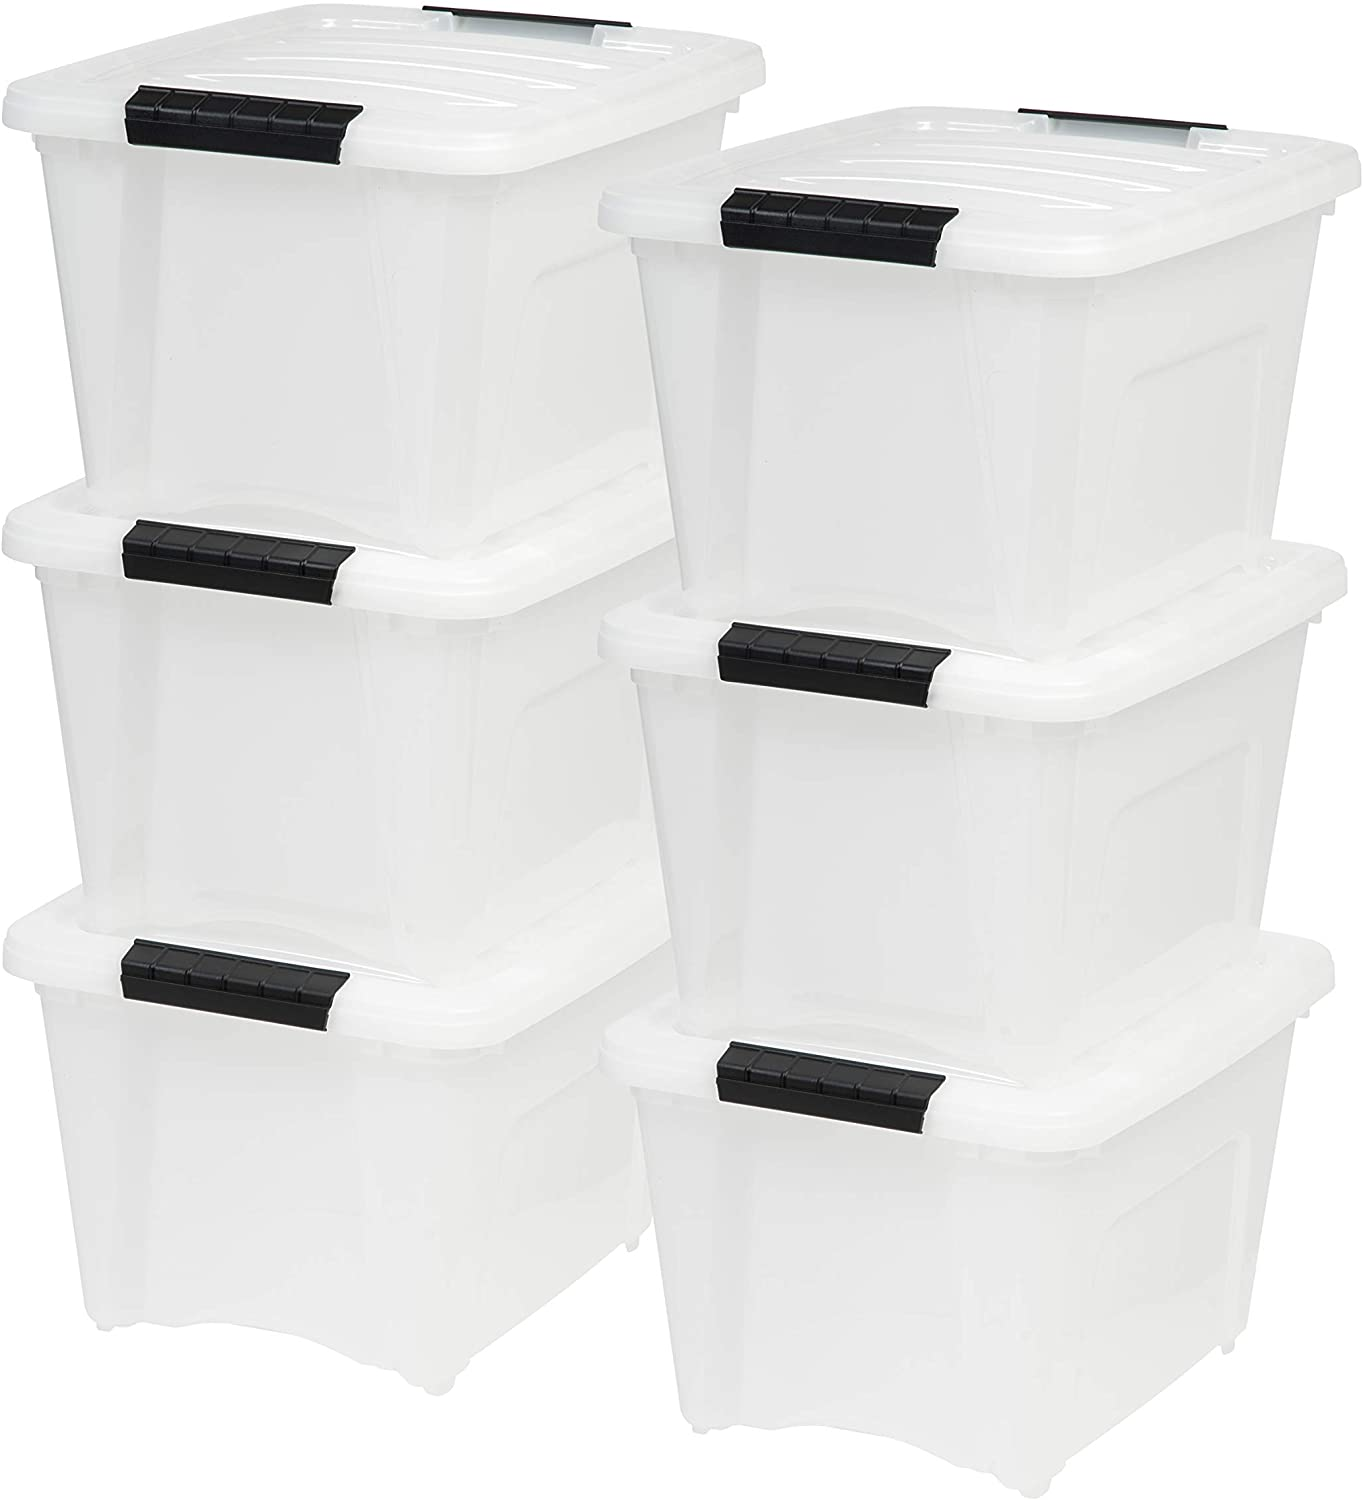 IRIS USA TB-17 19-Quart Stack & Pull Storage Bins